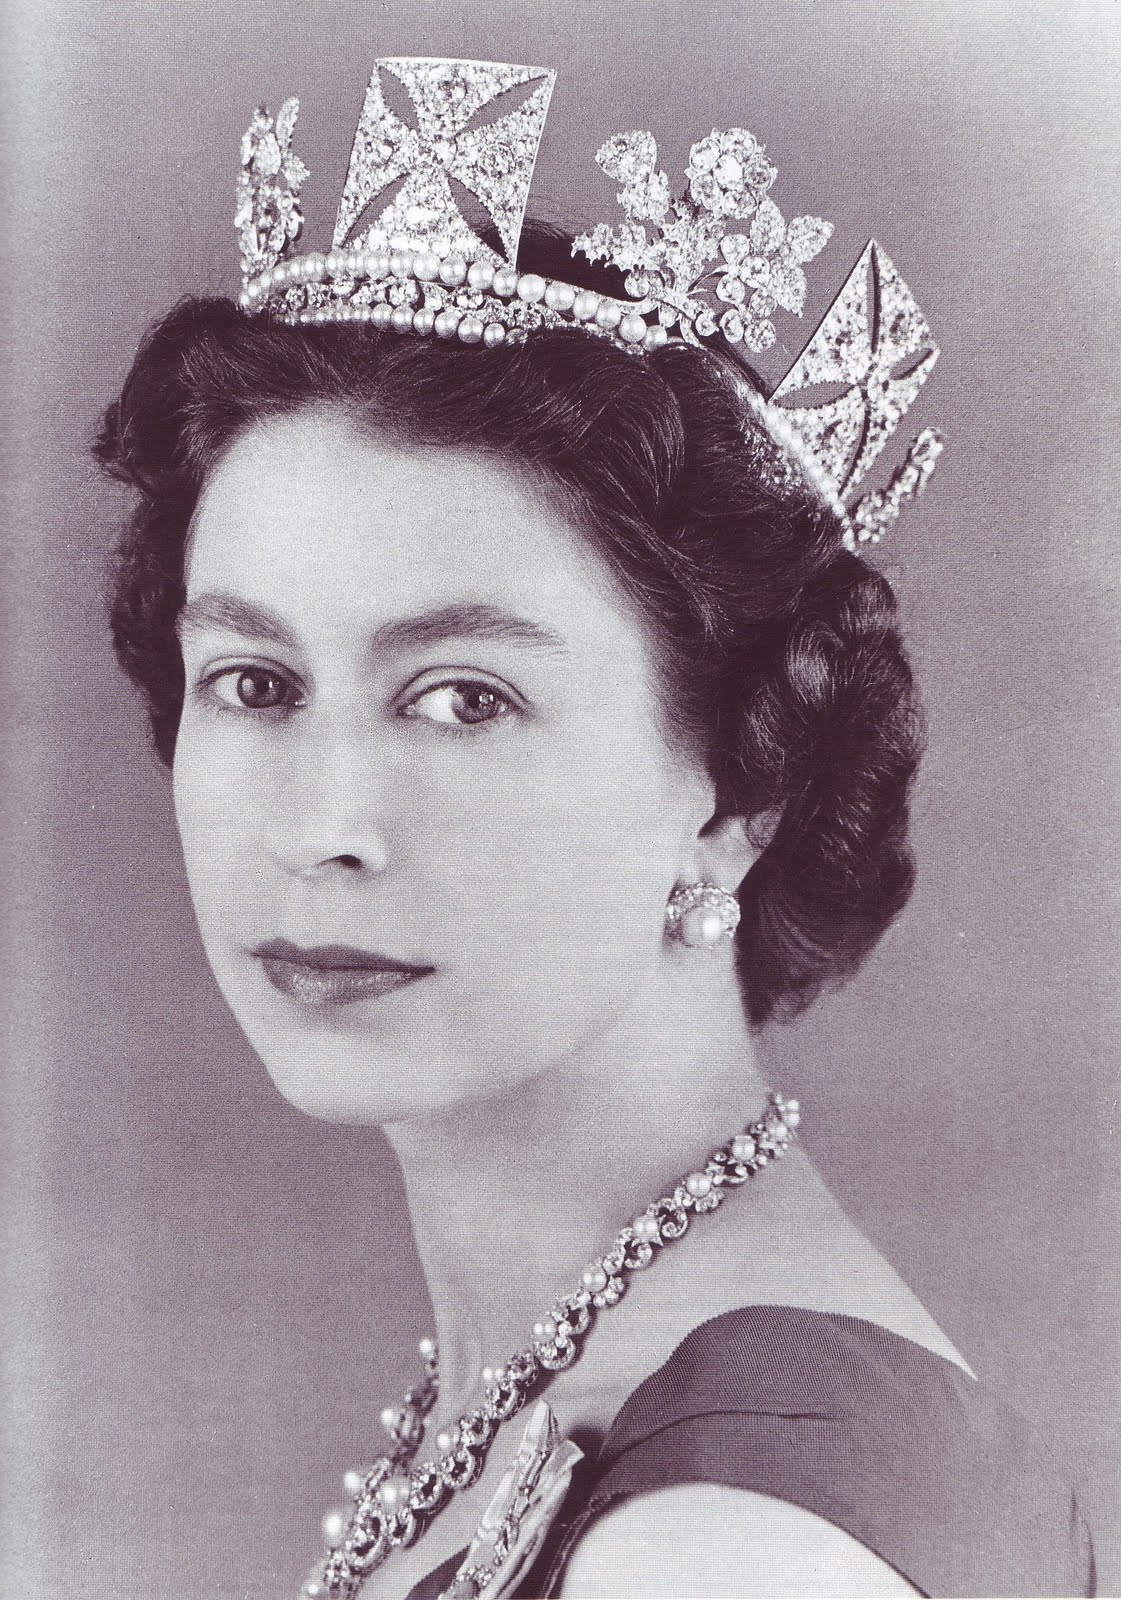 Rockefeller The Virgin Killer Queen Of England And The World